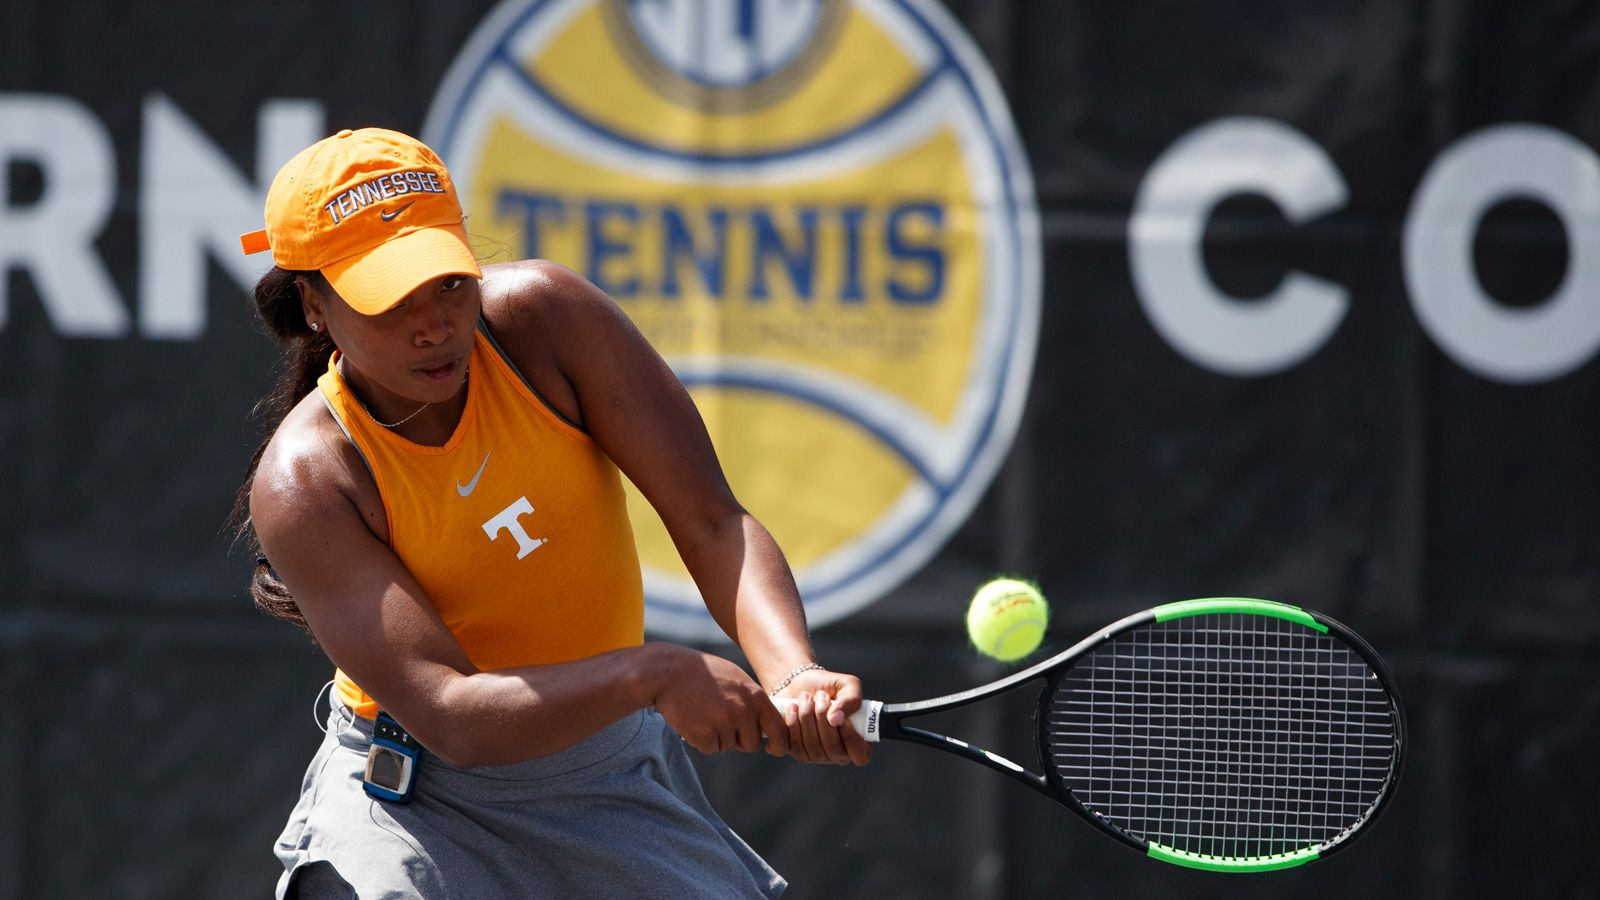 Razorbacks and Vols advance on Day 1 of SEC Tournament